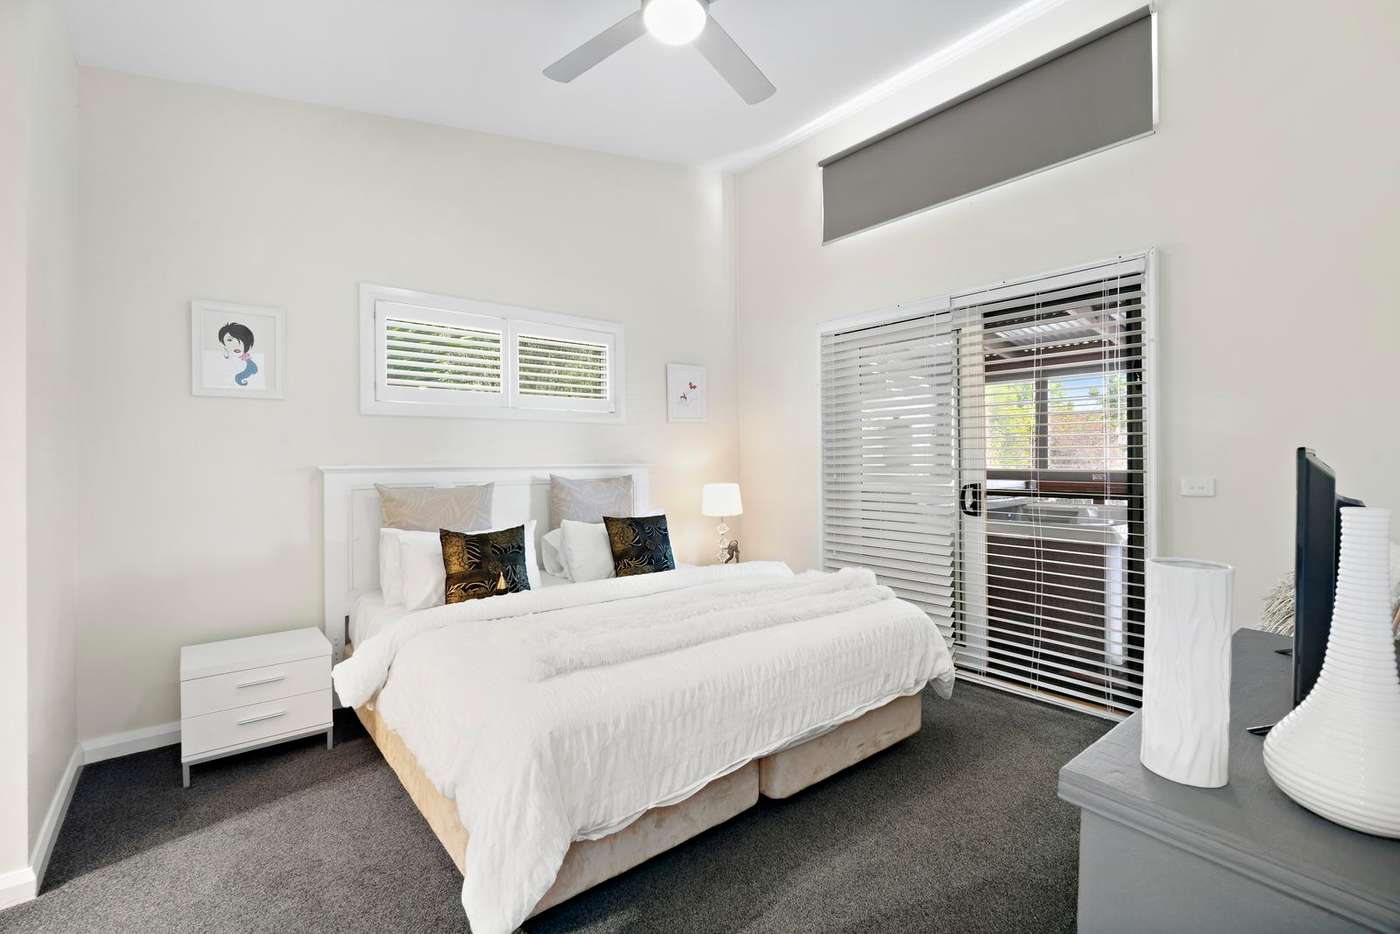 Sixth view of Homely house listing, 8 Sixth Street, Hepburn Springs VIC 3461